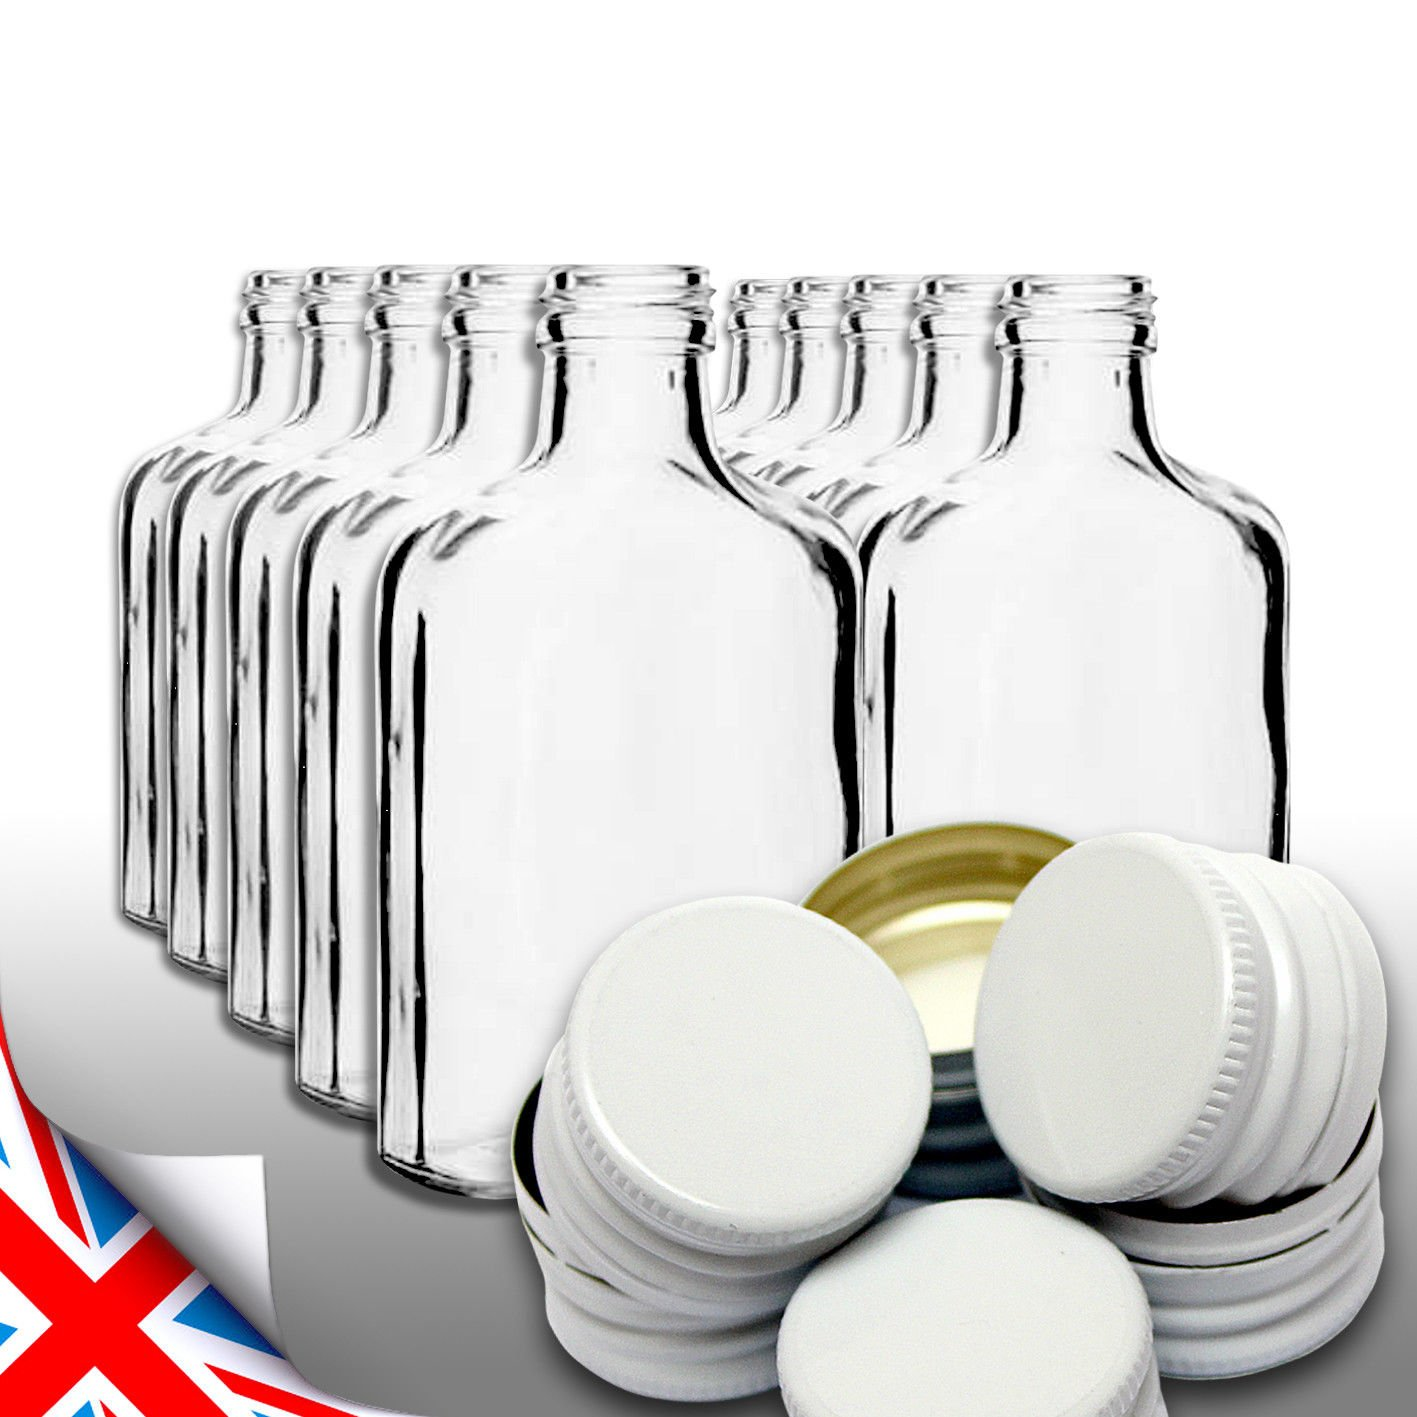 Brand 10 pocket flask bottles 200ml for wine, whisky or spirits with WHITE screw caps Biowin